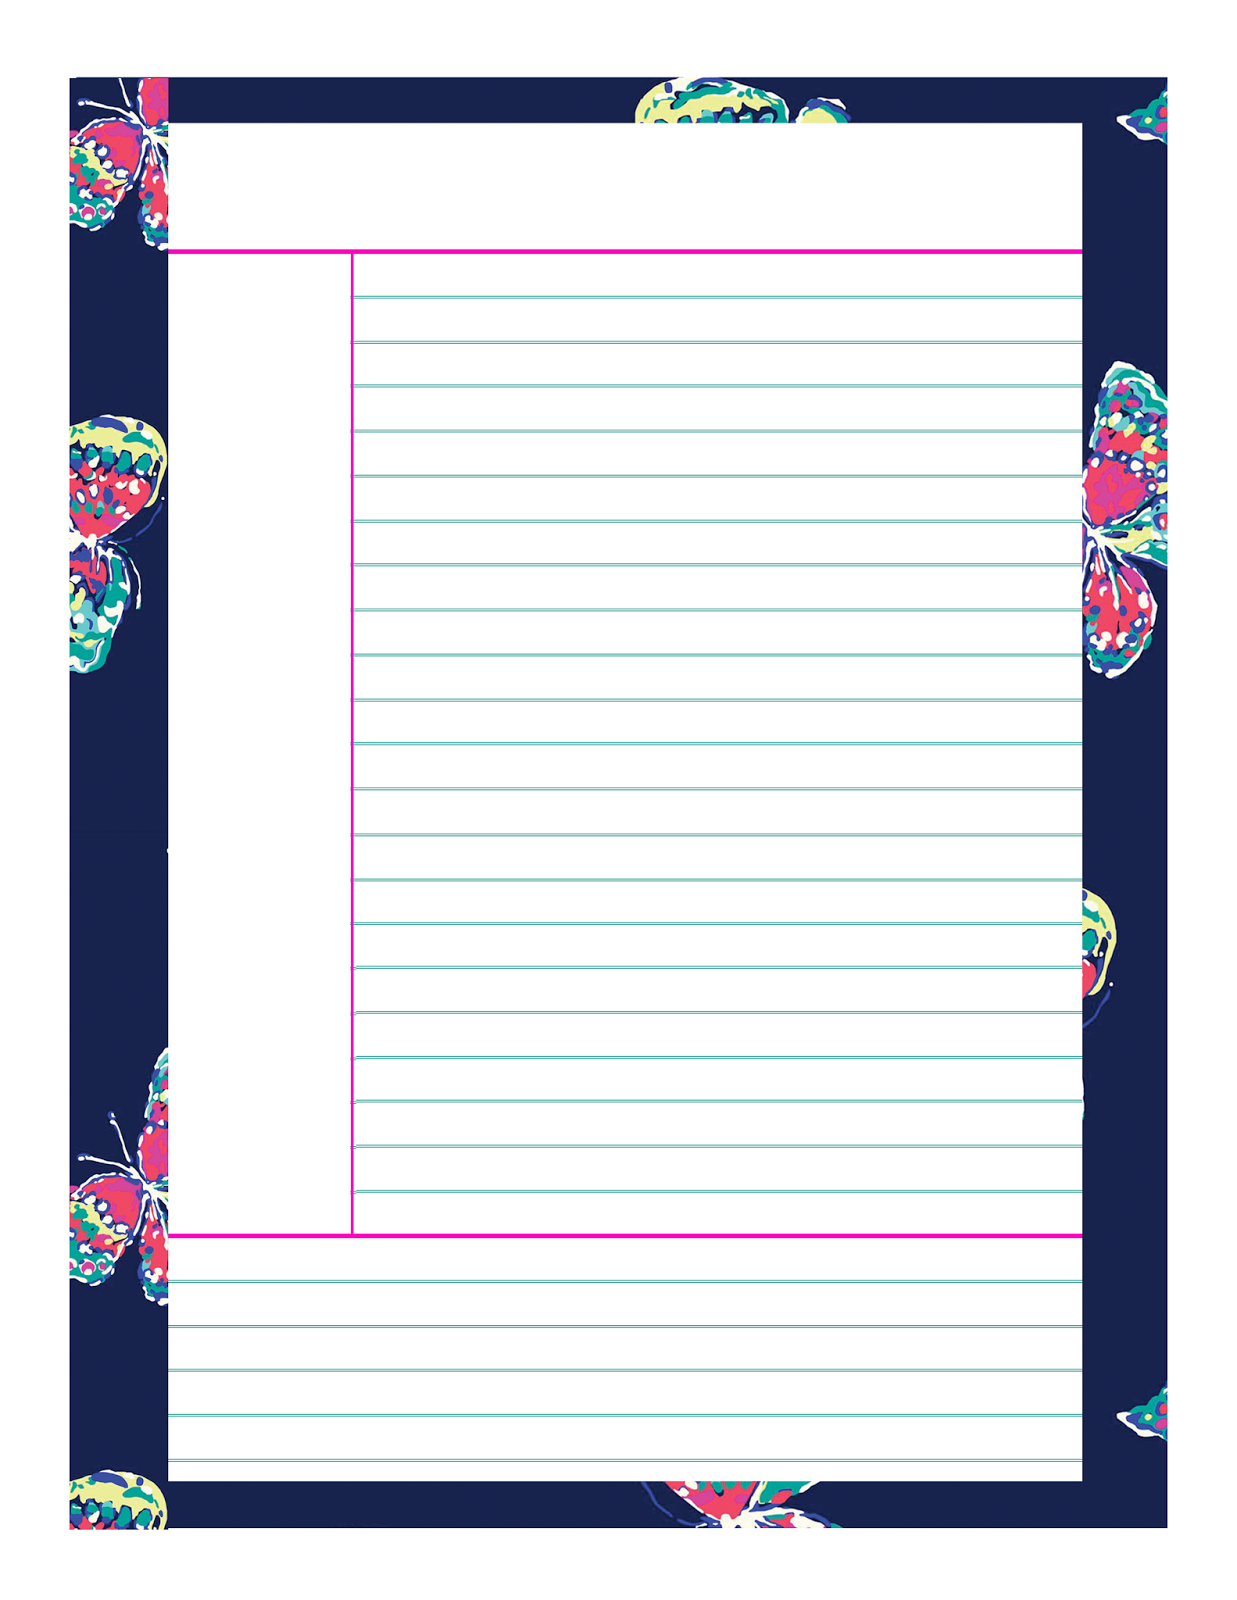 Nerdy image in cornell notes printable